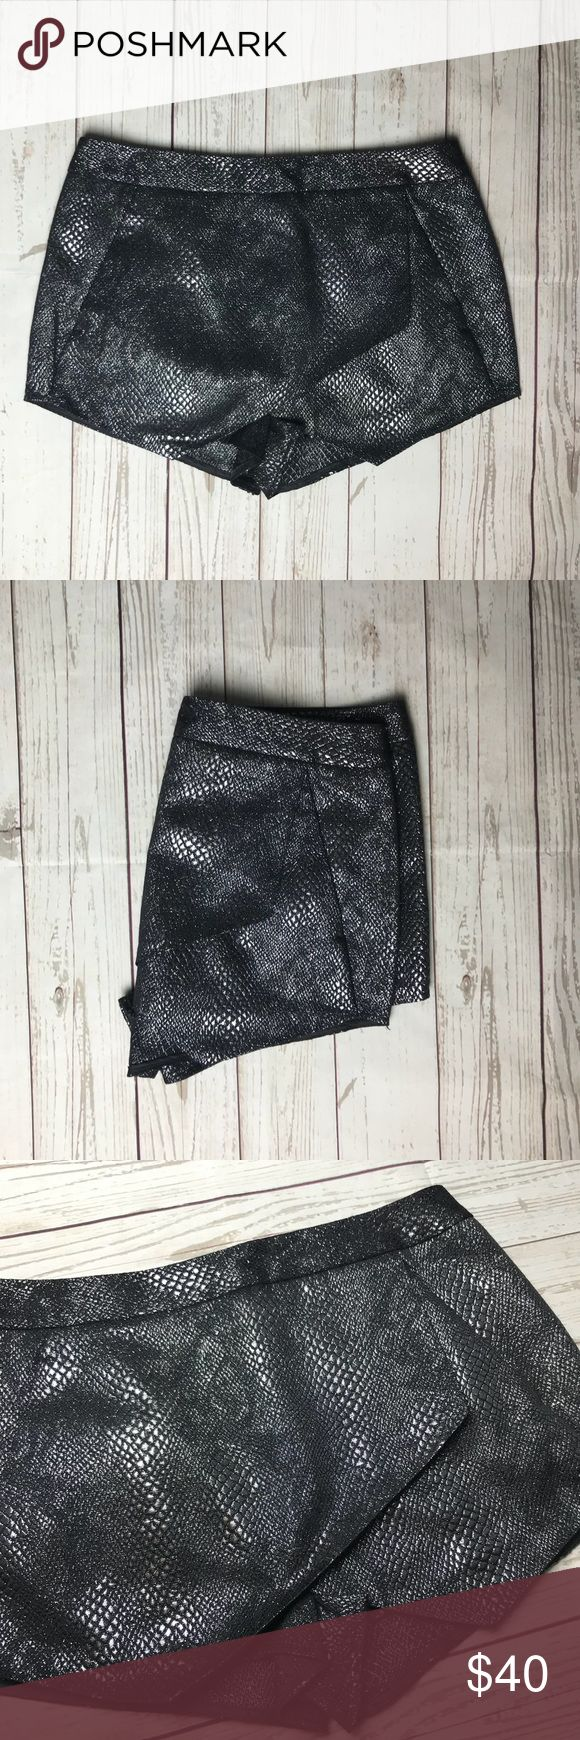 Women's Express Shorts Black and silver metallic shorts. NWT. Size 4. Express Shorts Skorts